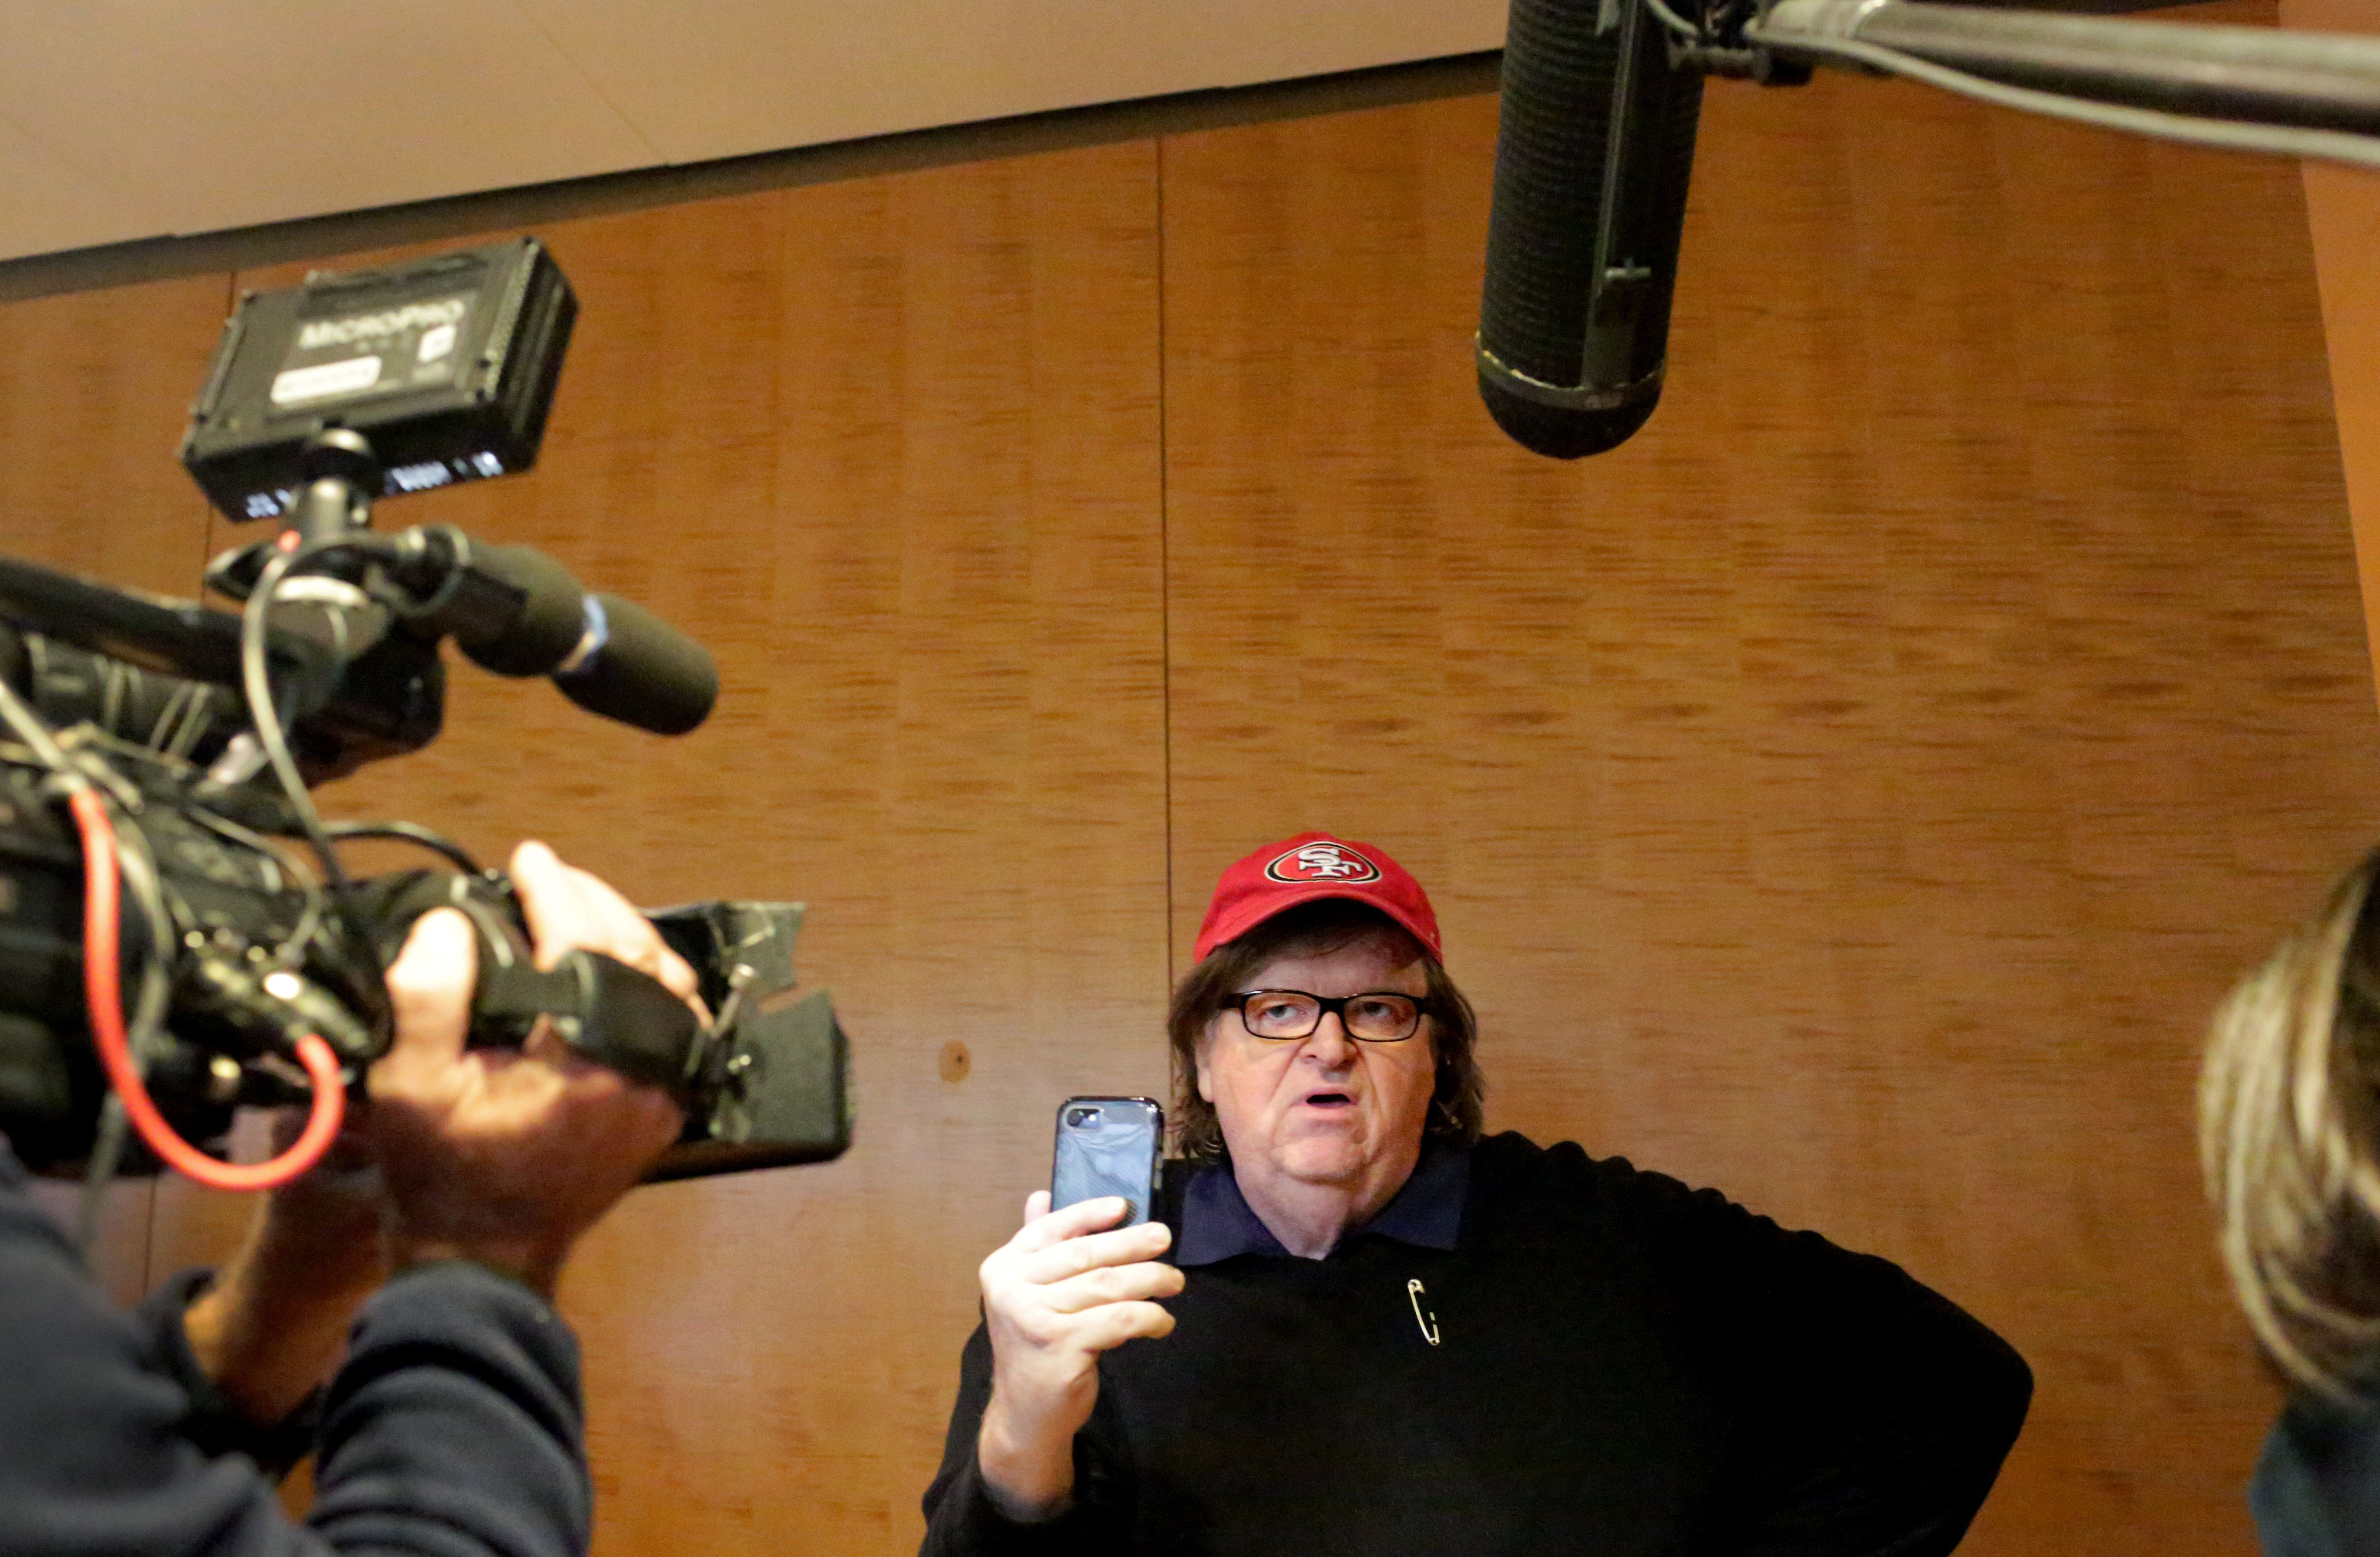 Michael Moore, a progressive filmmaker, streamed his quest for a meeting with Donald Trump on Facebook Live.